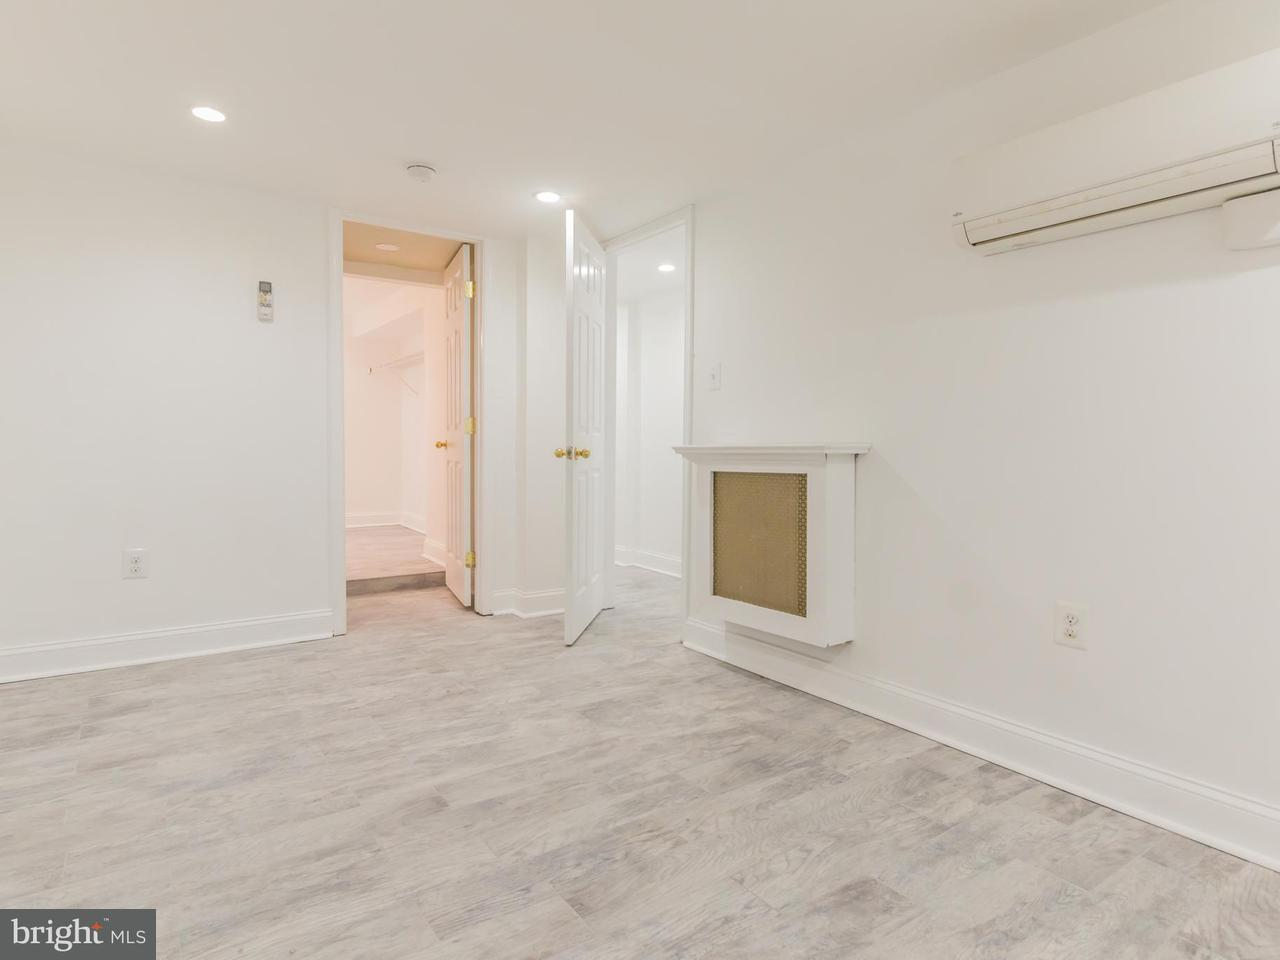 Other Residential for Rent at 1319 21st St NW #unit B Washington, District Of Columbia 20036 United States